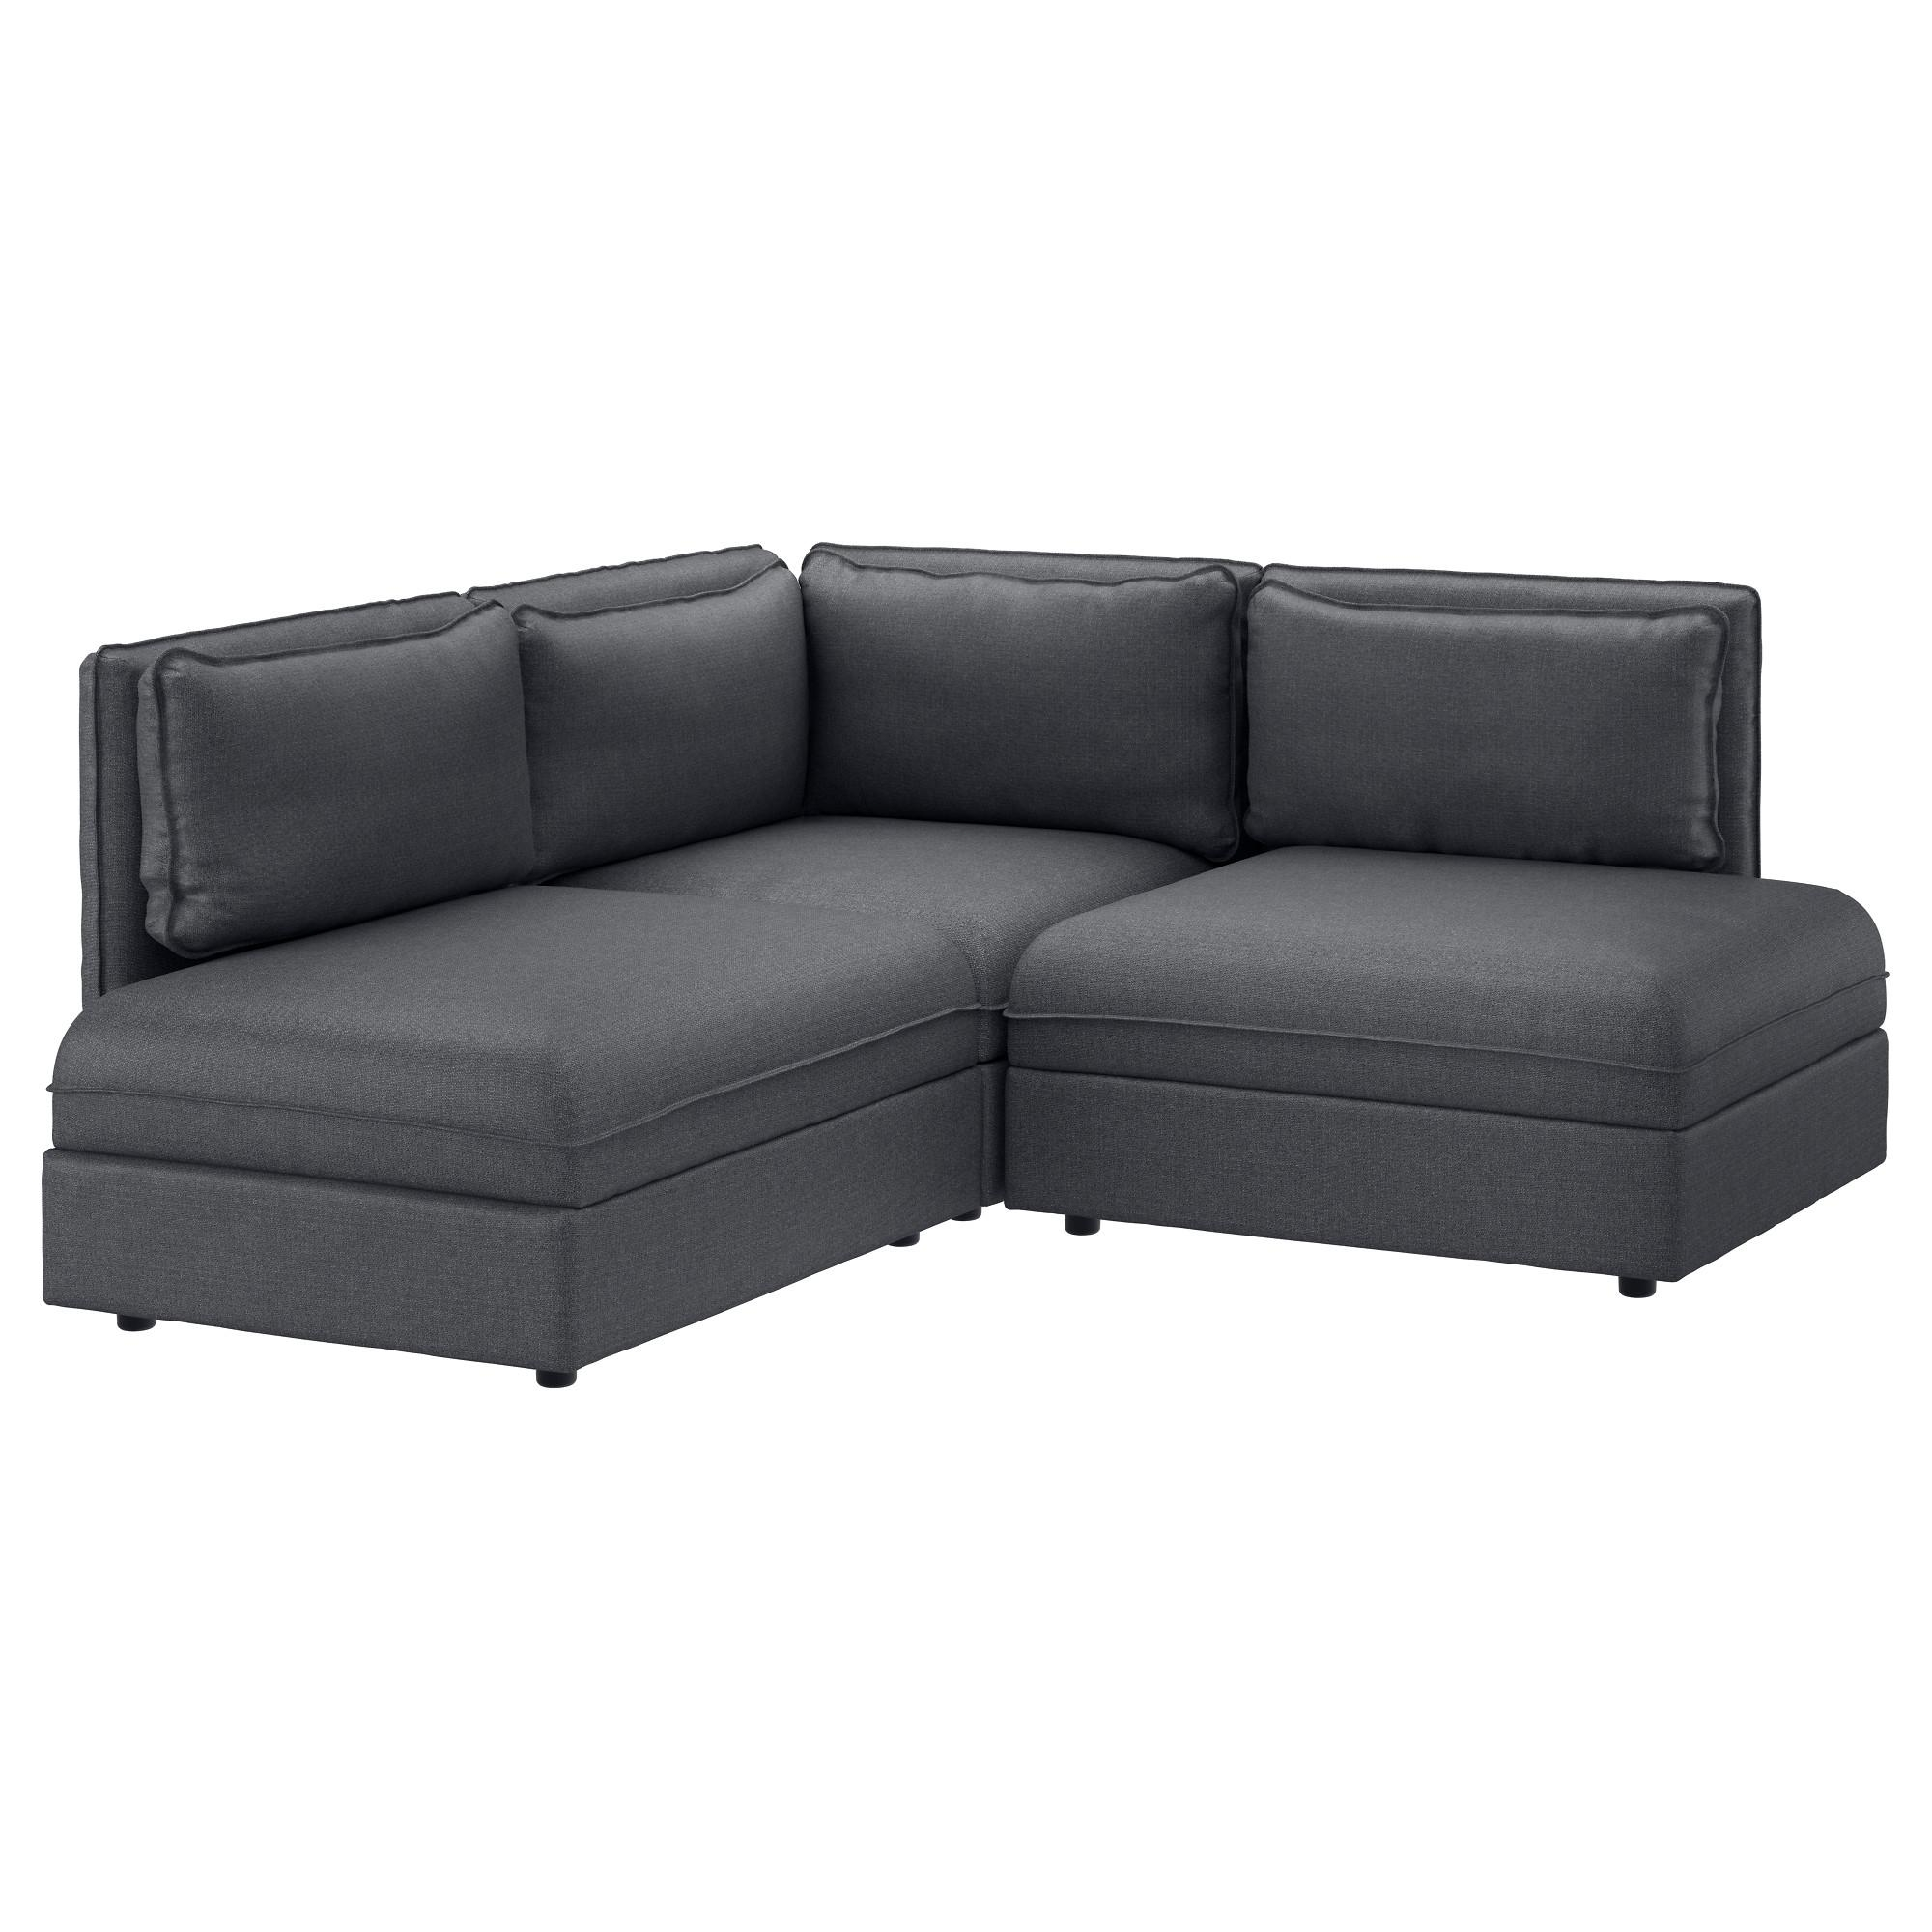 Sofas Center : 37 Unusual Ikea Corner Sofa Photos Design Ikea With Regard To Unusual Sofa (View 16 of 20)